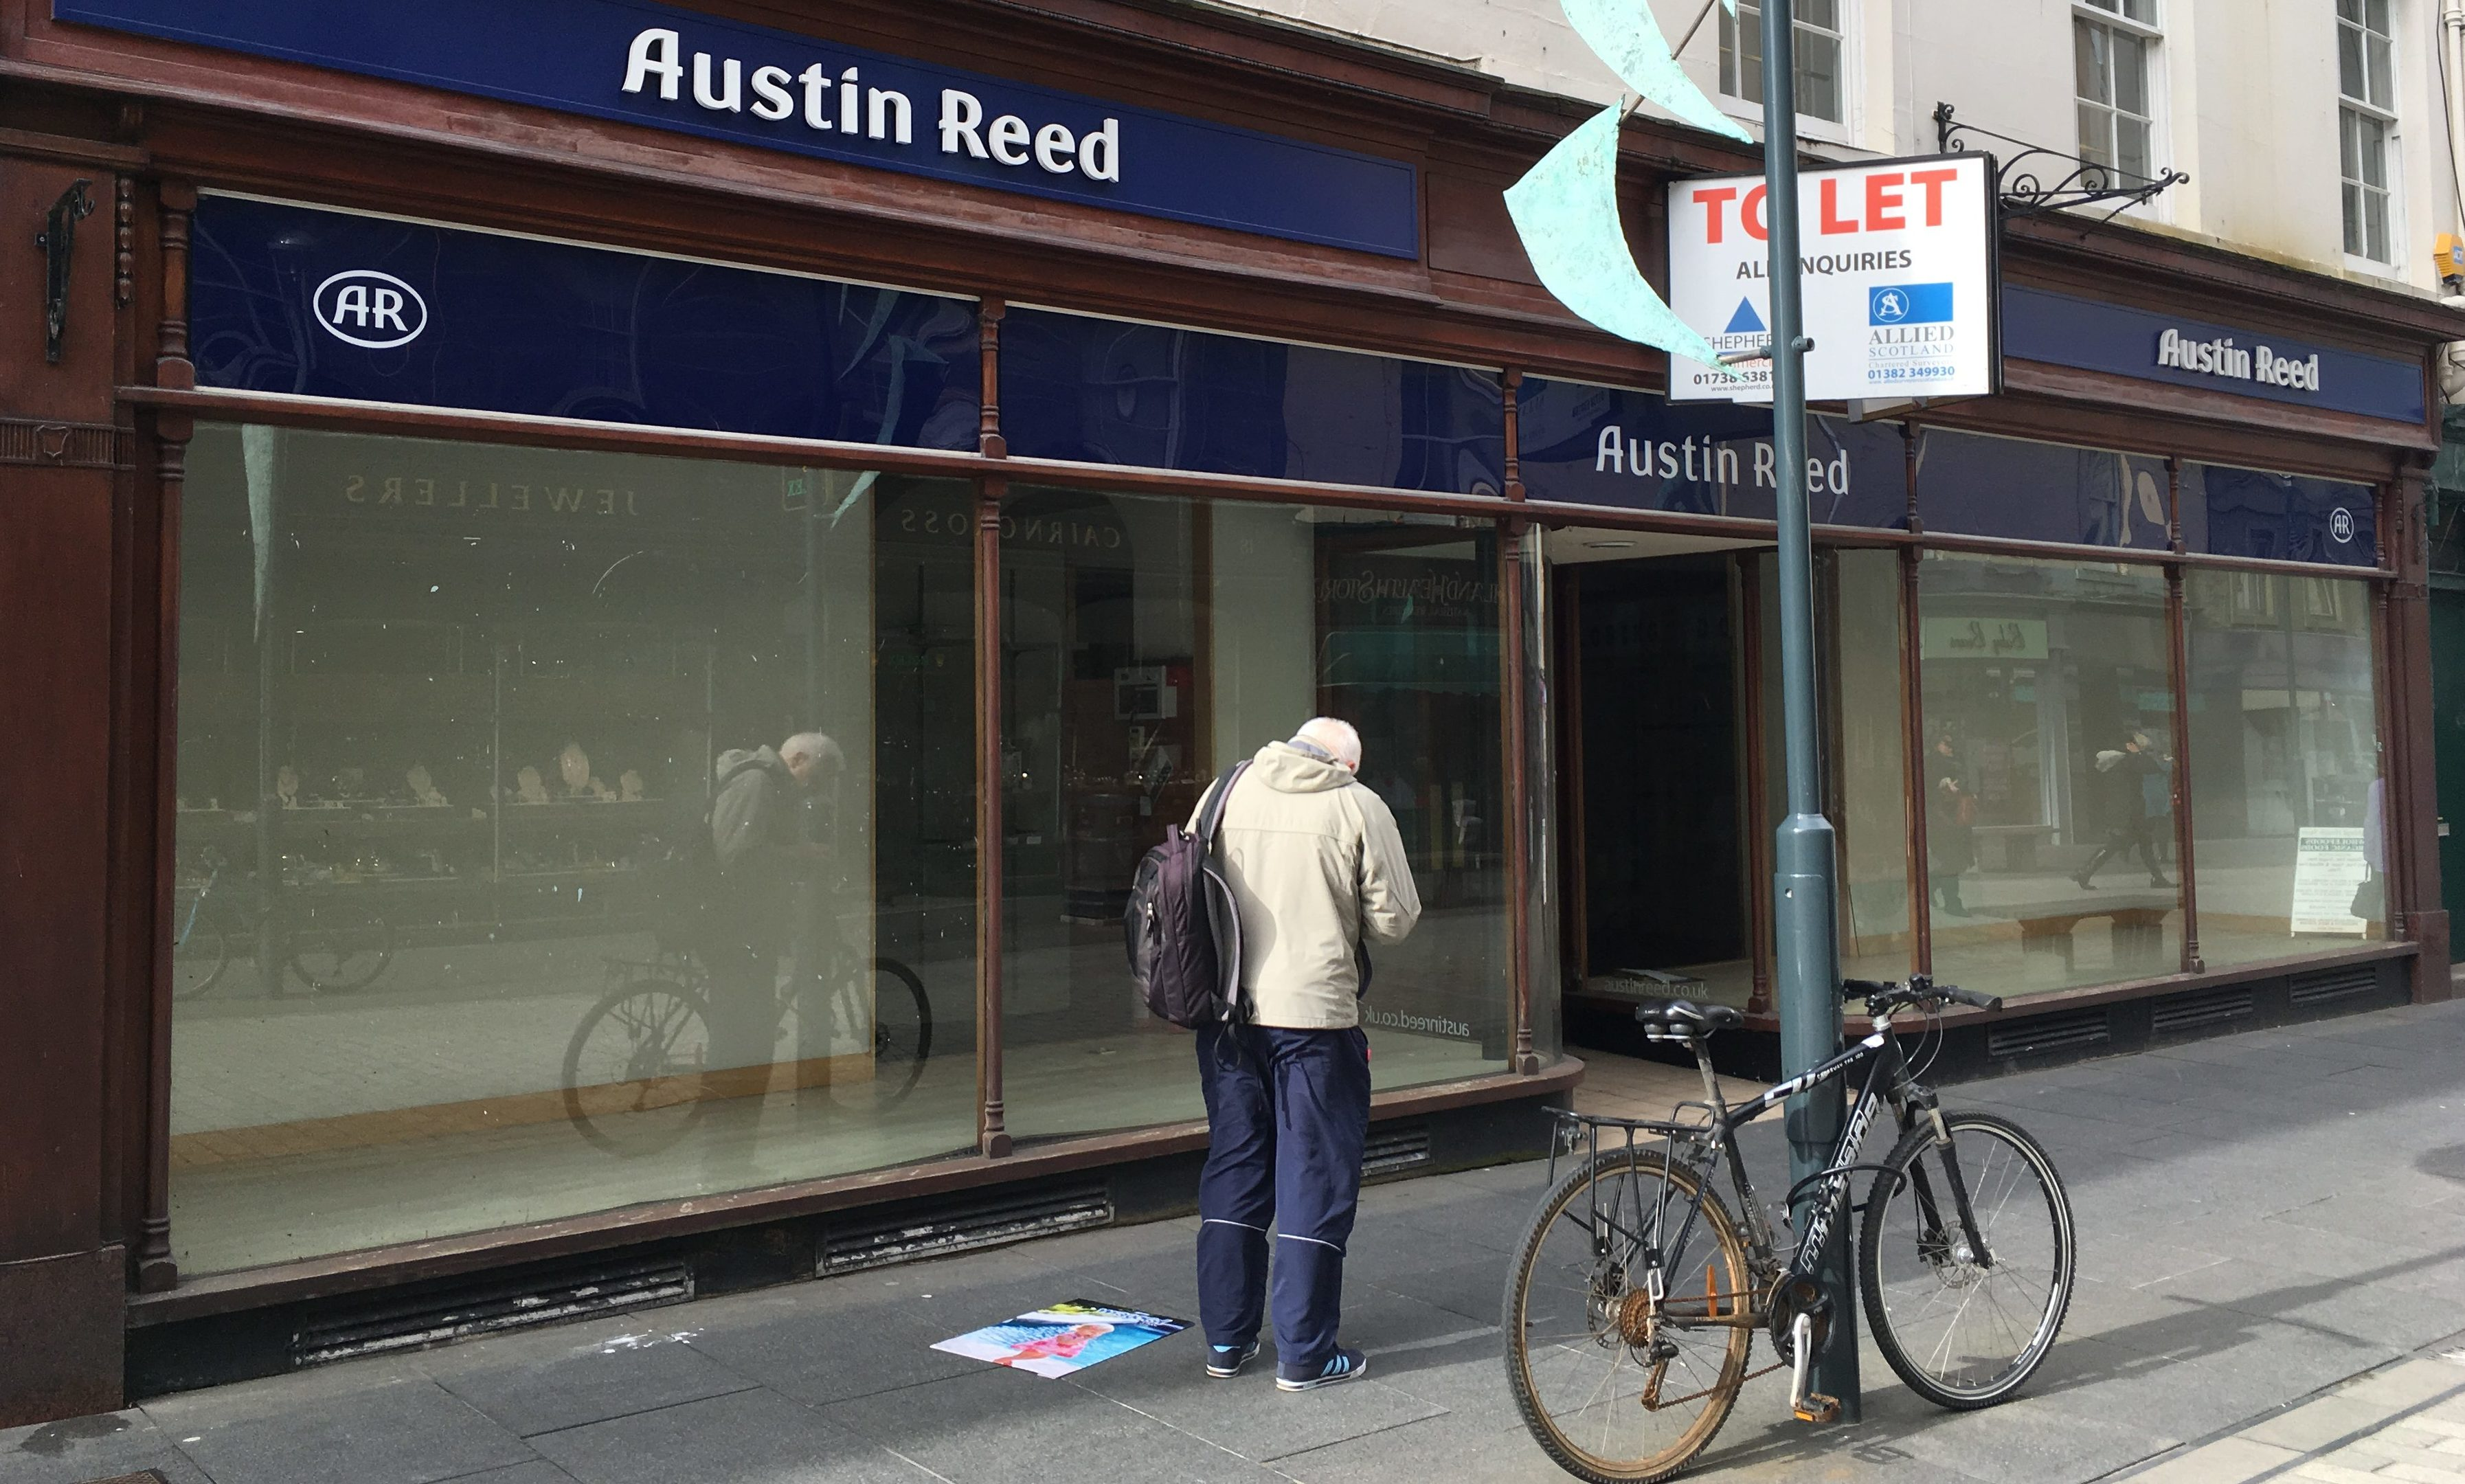 The empty Austin Reed store in Perth city centre.